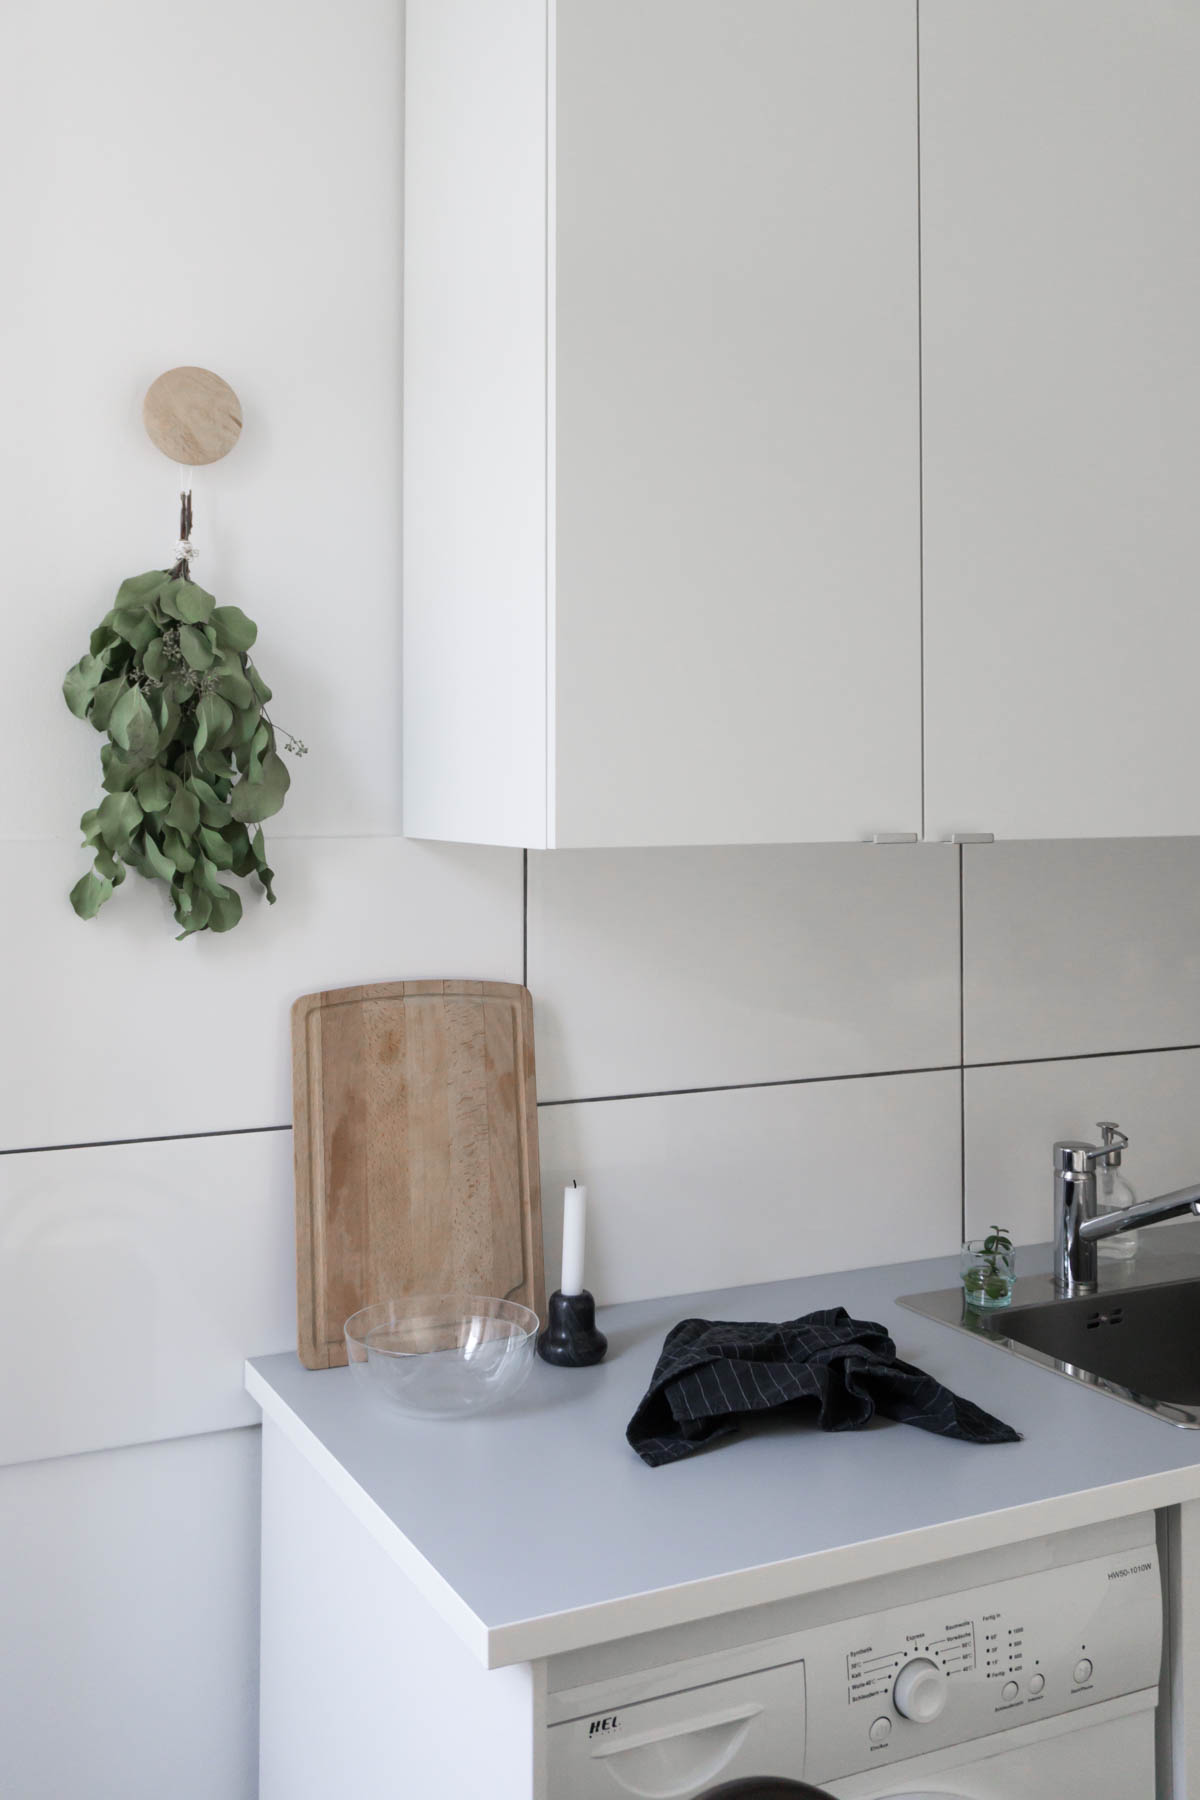 Ikea Kitchen Design Visit 5 Tips For Designing An Ikea Kitchen Rg Daily